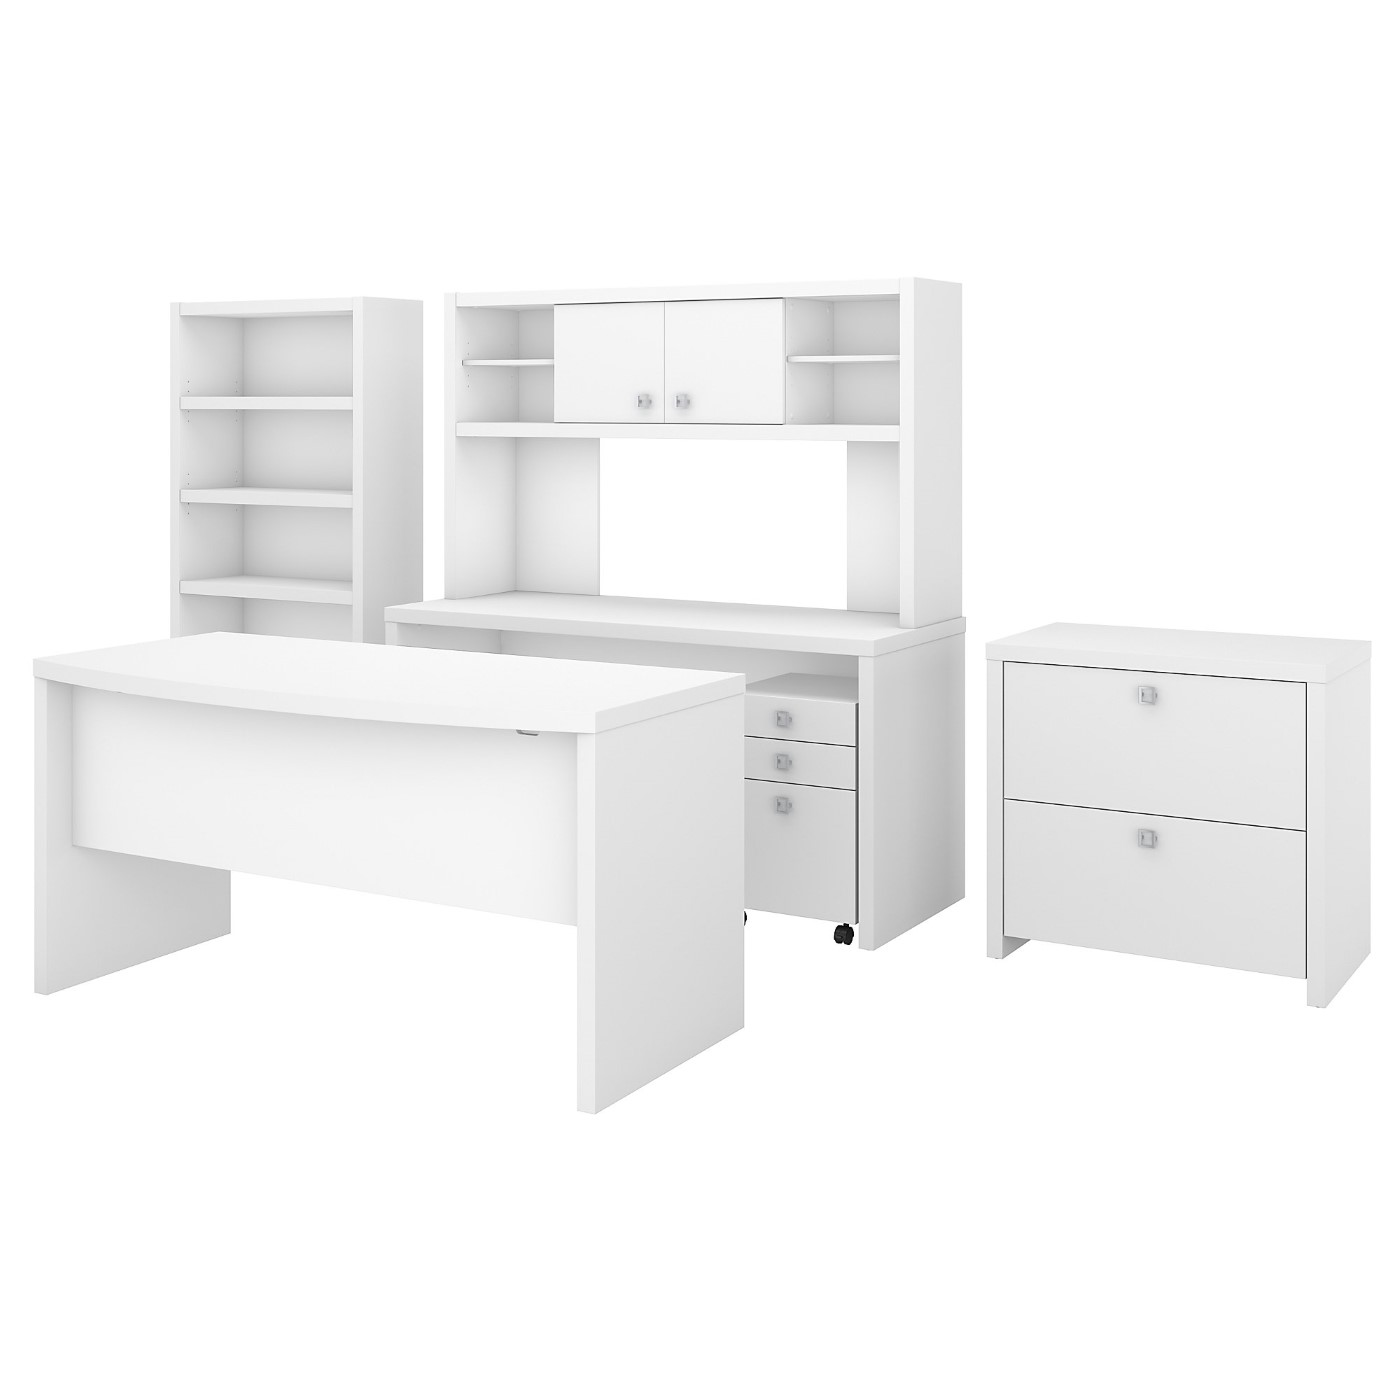 OFFICE BY KATHY IRELAND� ECHO BOW FRONT DESK, CREDENZA WITH HUTCH, BOOKCASE AND FILE CABINETS. FREE SHIPPING